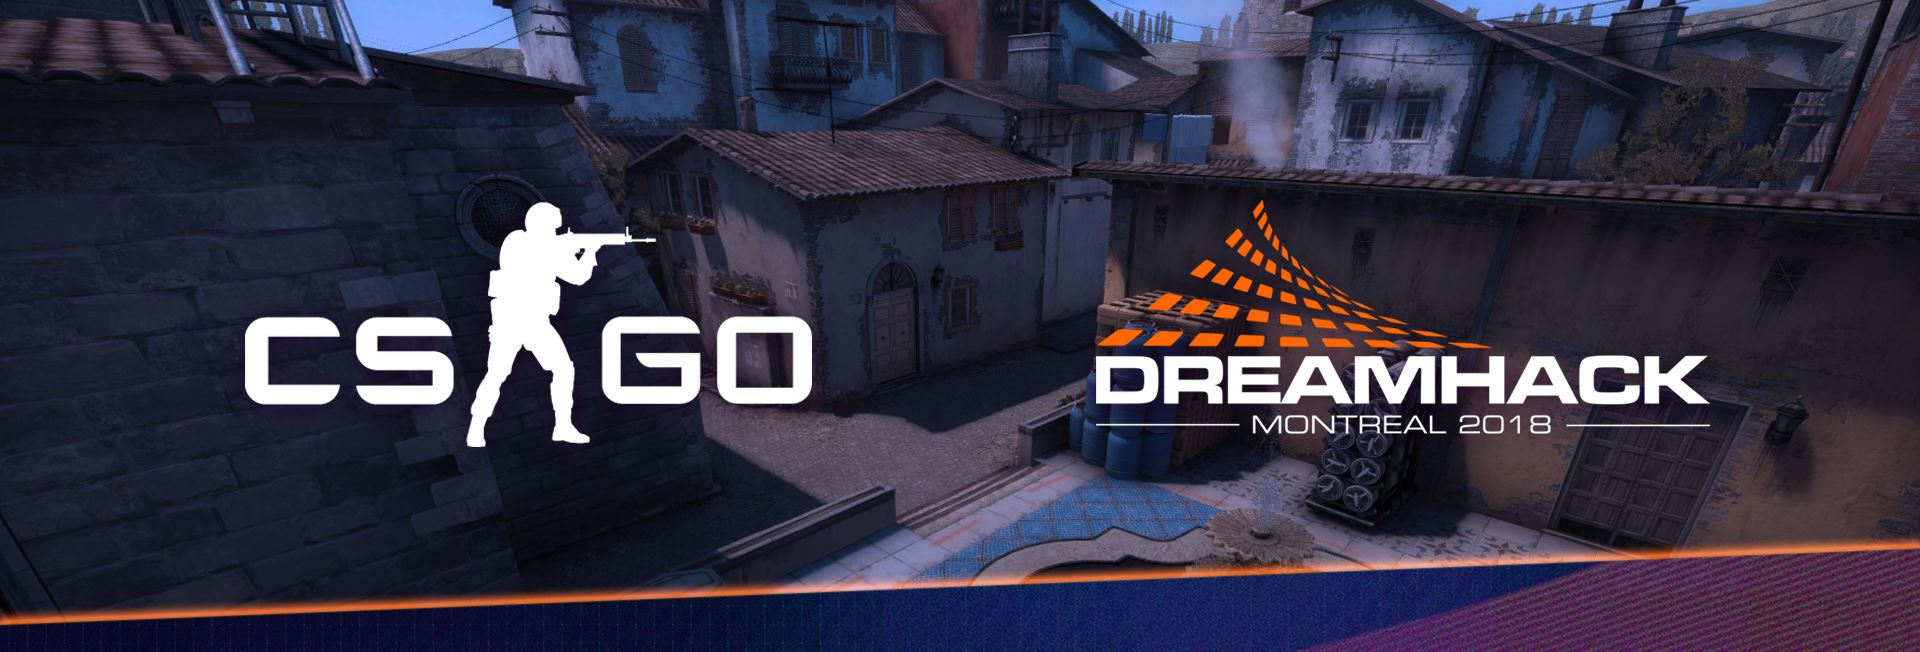 Dreamhack Montreal 2018 - Counter-Strike: Global Offensive